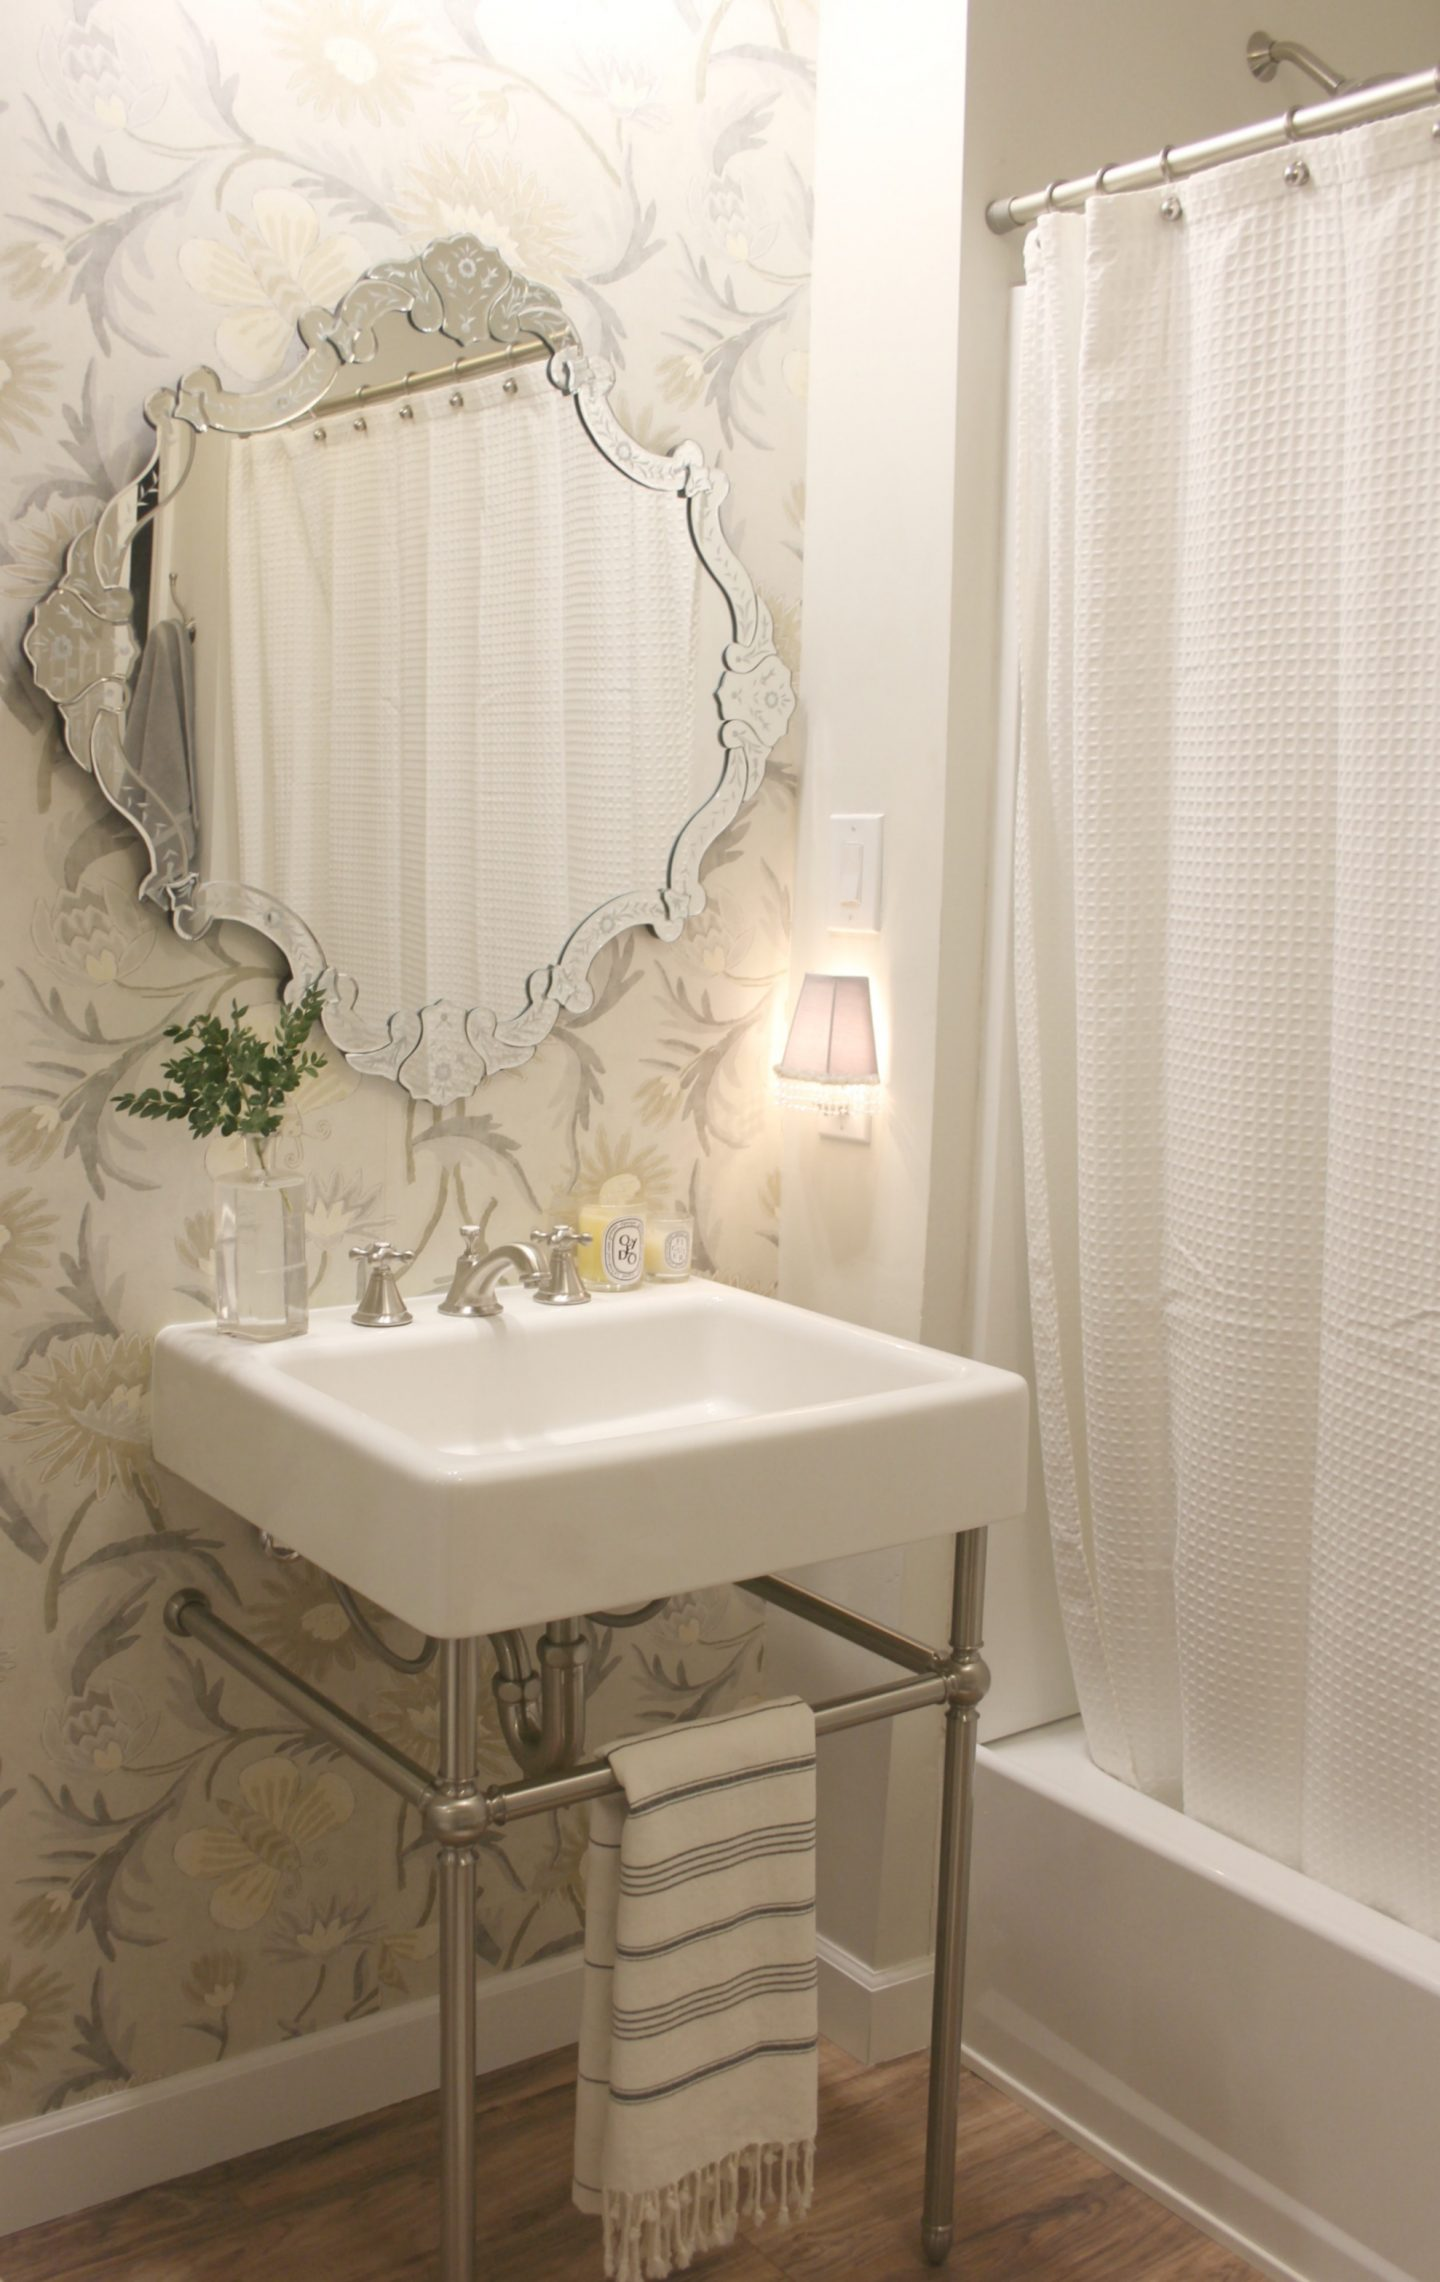 DIY Bathroom Design at the Fixer Upper {Before and After} - Hello Lovely